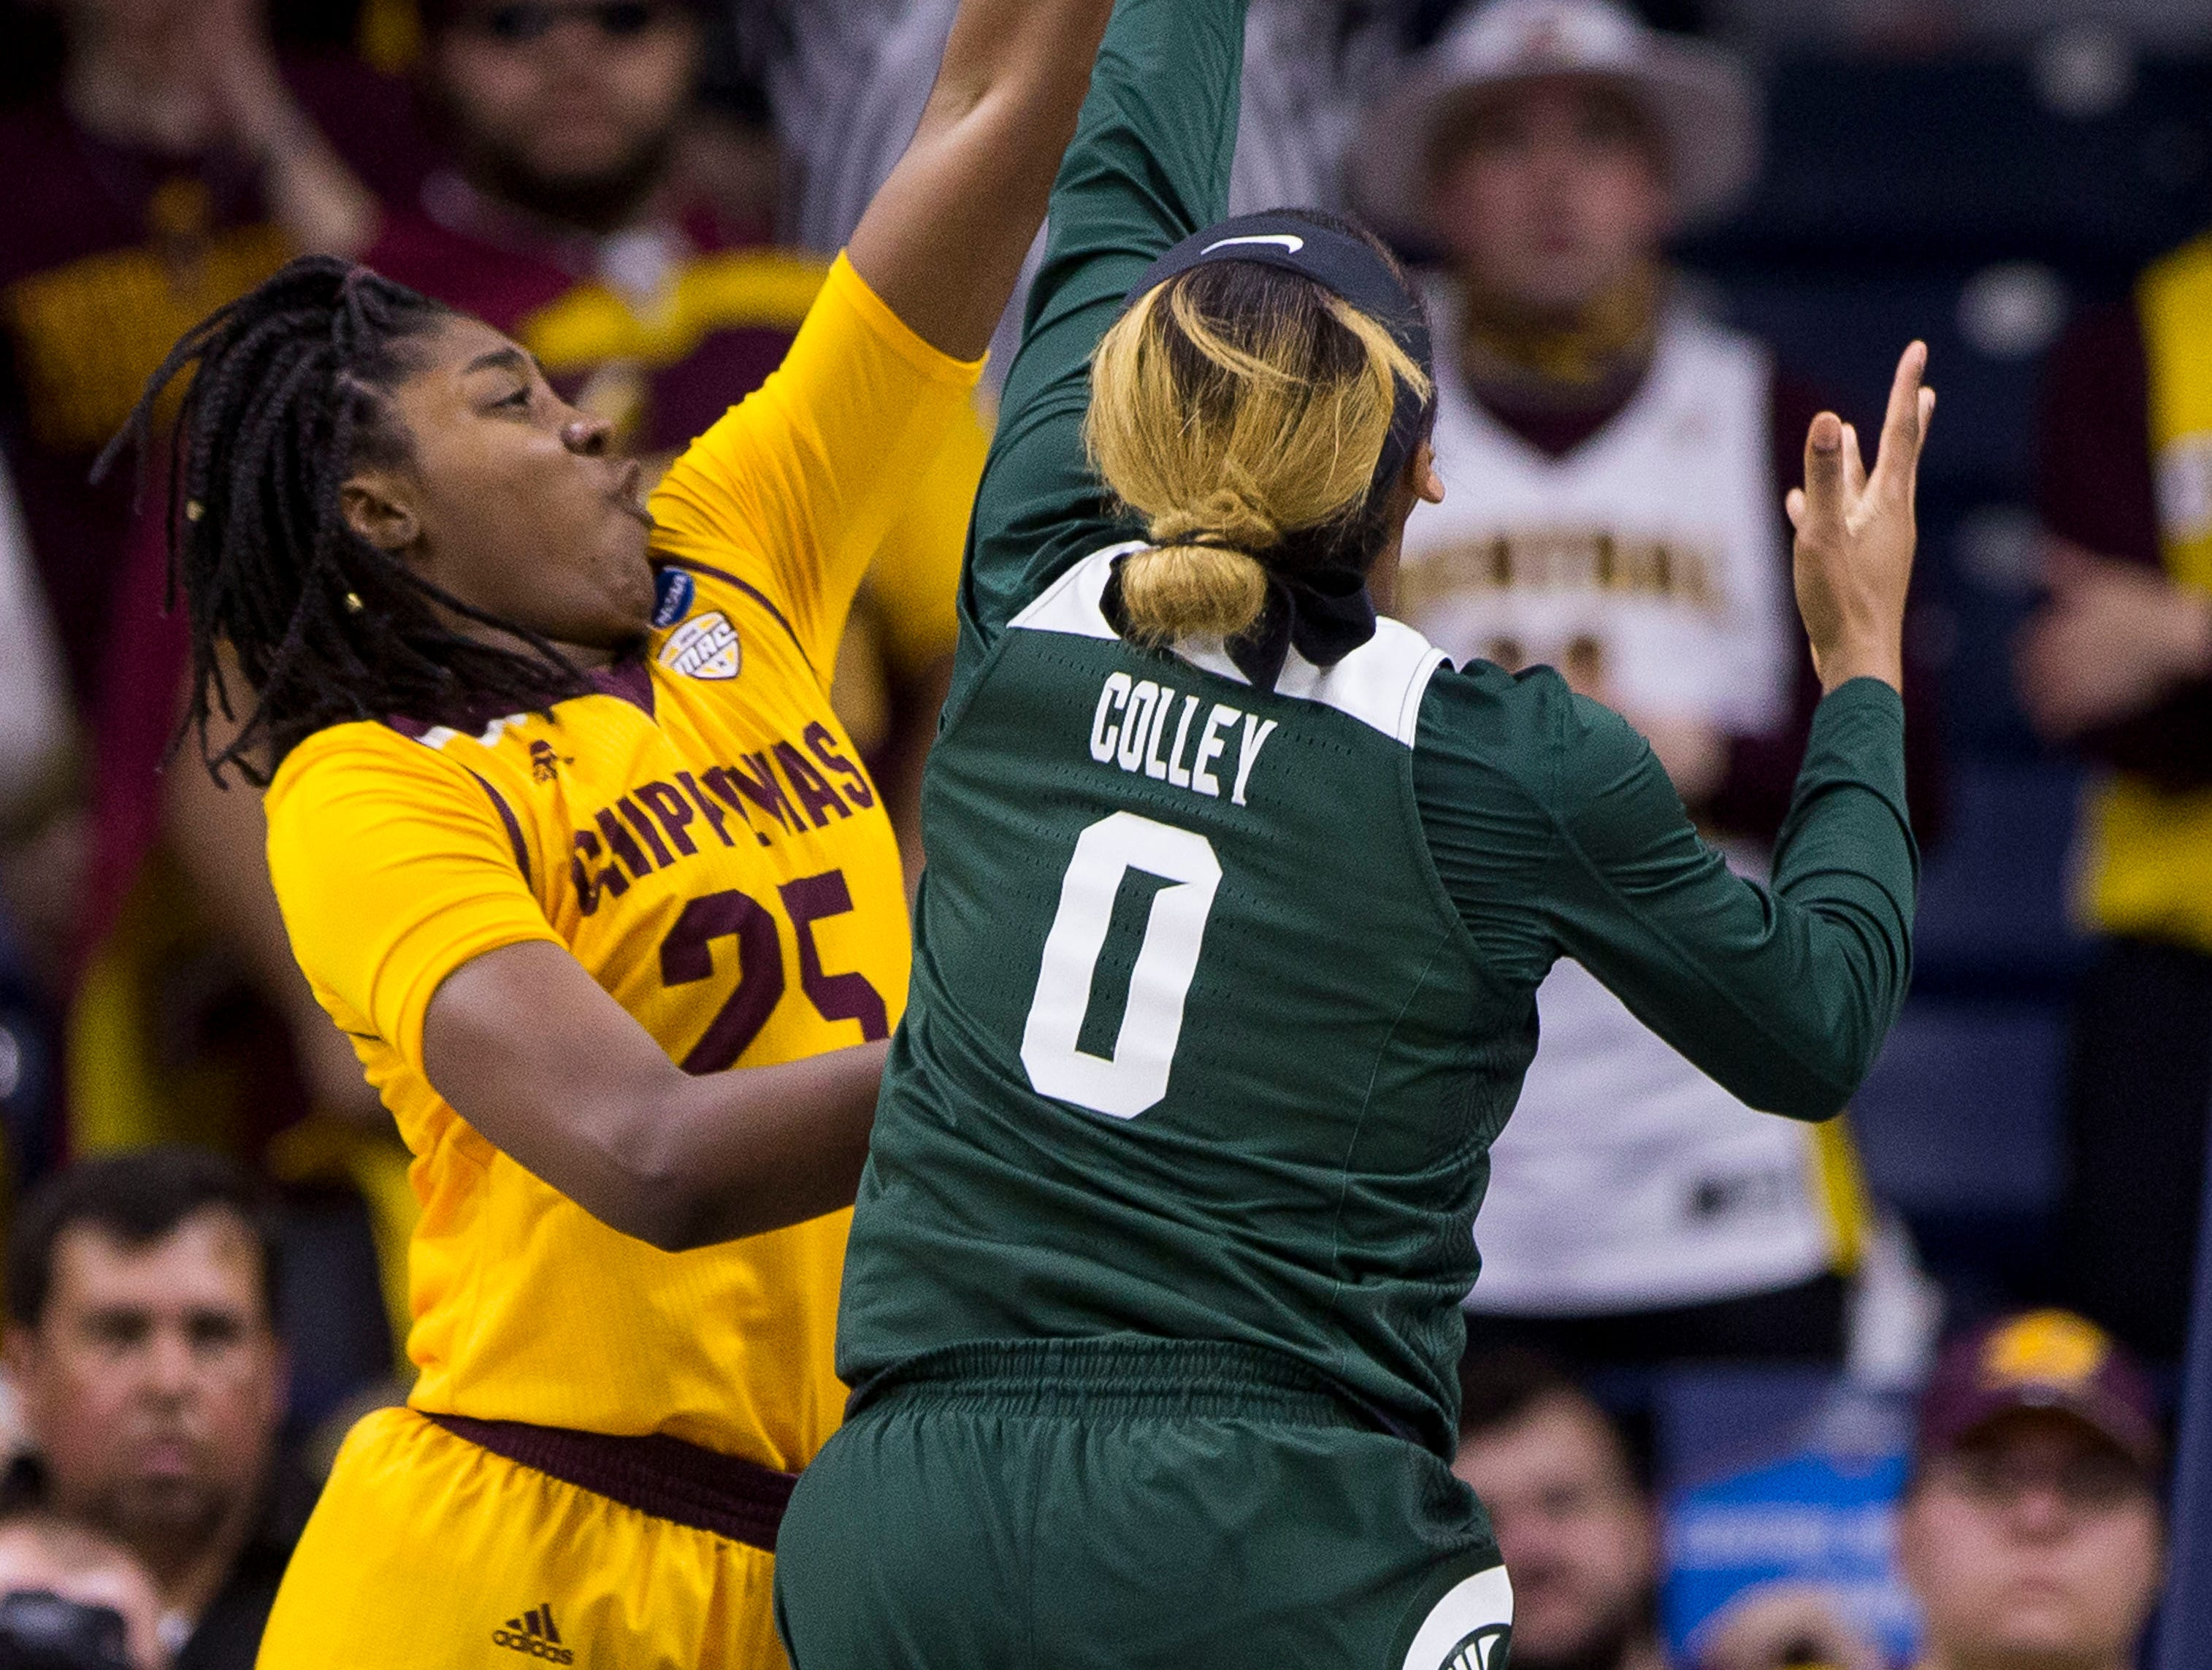 Central Michigan's Jahari Smith (25) blocks a shot by Michigan State's Shay Colley (0) during a first-round game in the NCAA women's college basketball tournament in South Bend, Ind., Saturday, March 23, 2019.